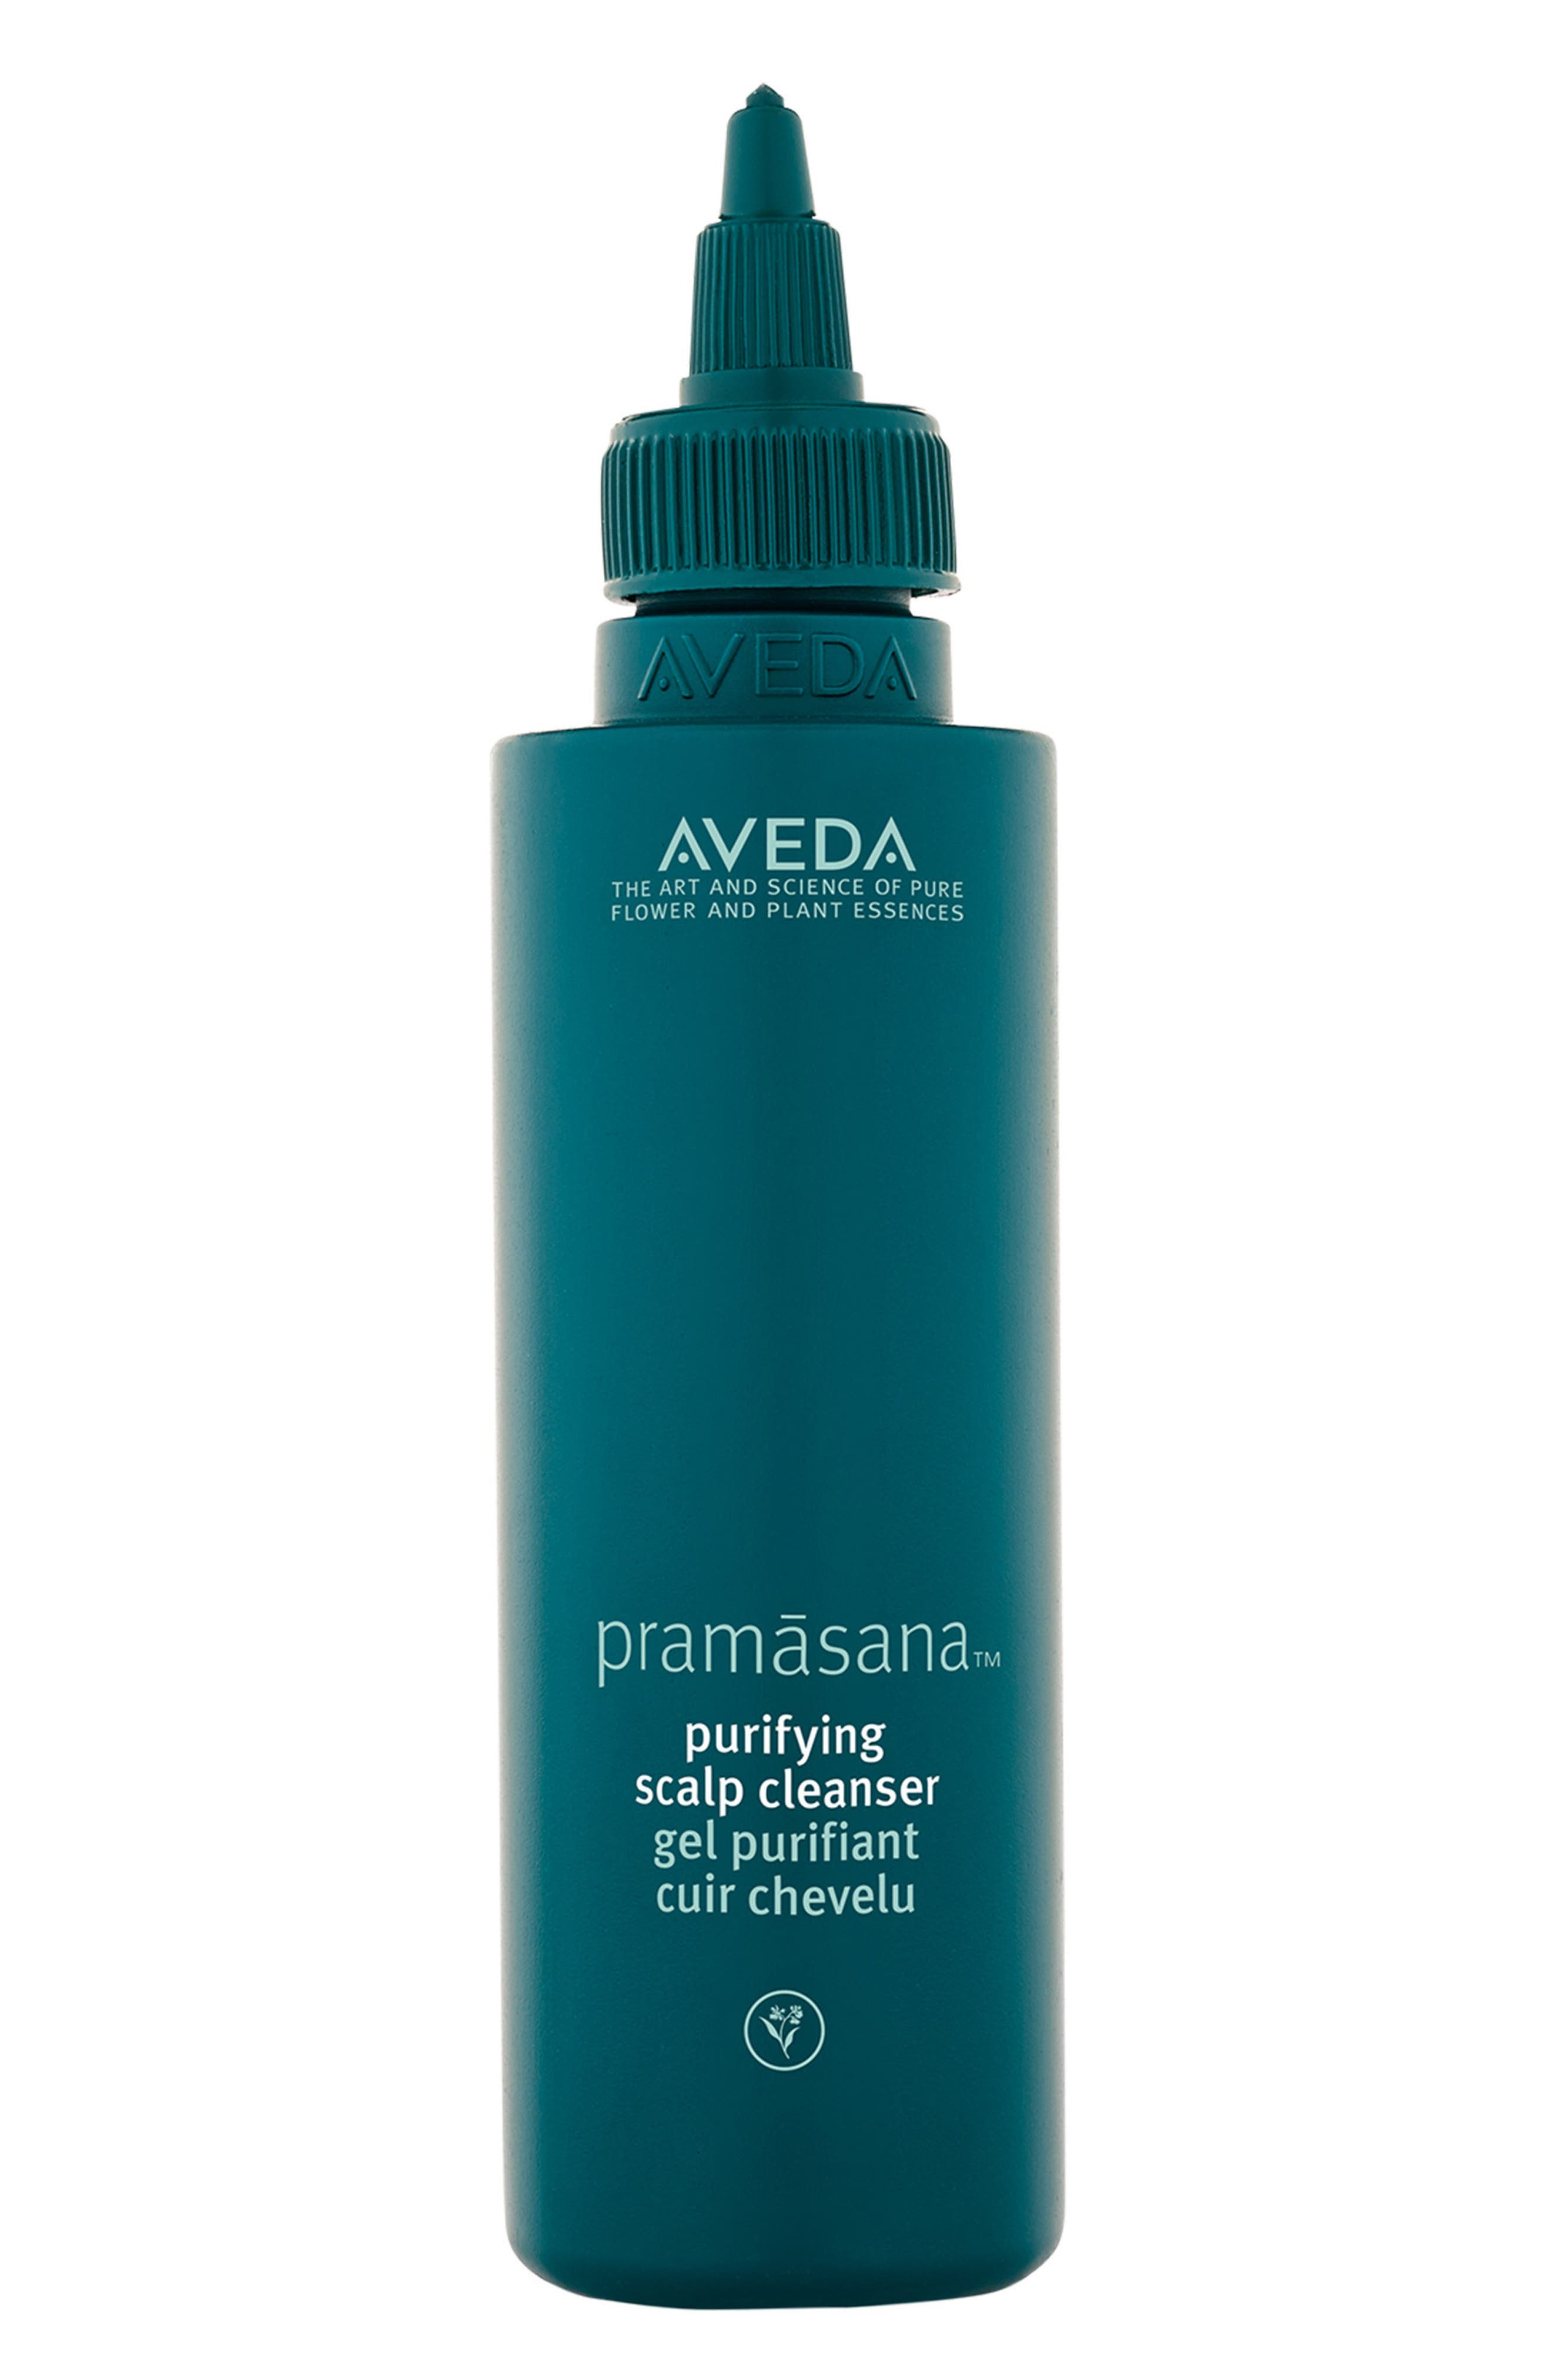 Aveda pramasana™ Purifying Scalp Cleanser